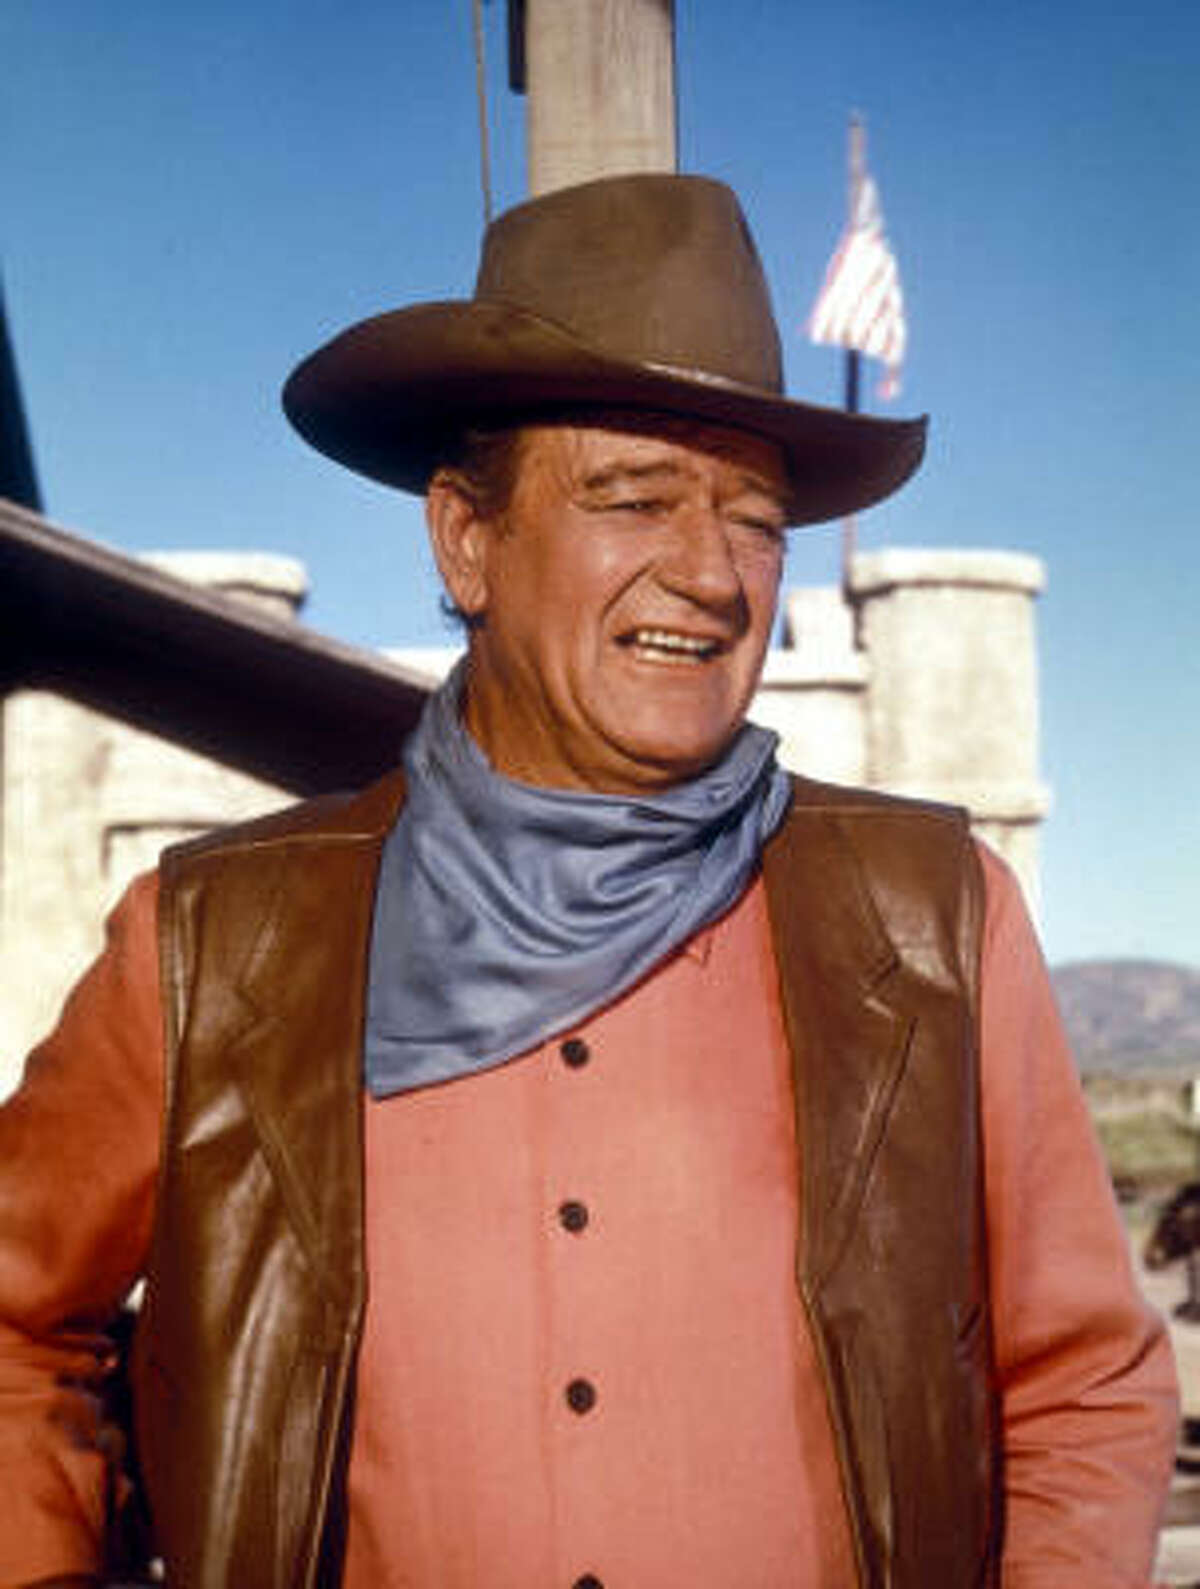 John Wayne would have been 100 years old on May 26, 2007.